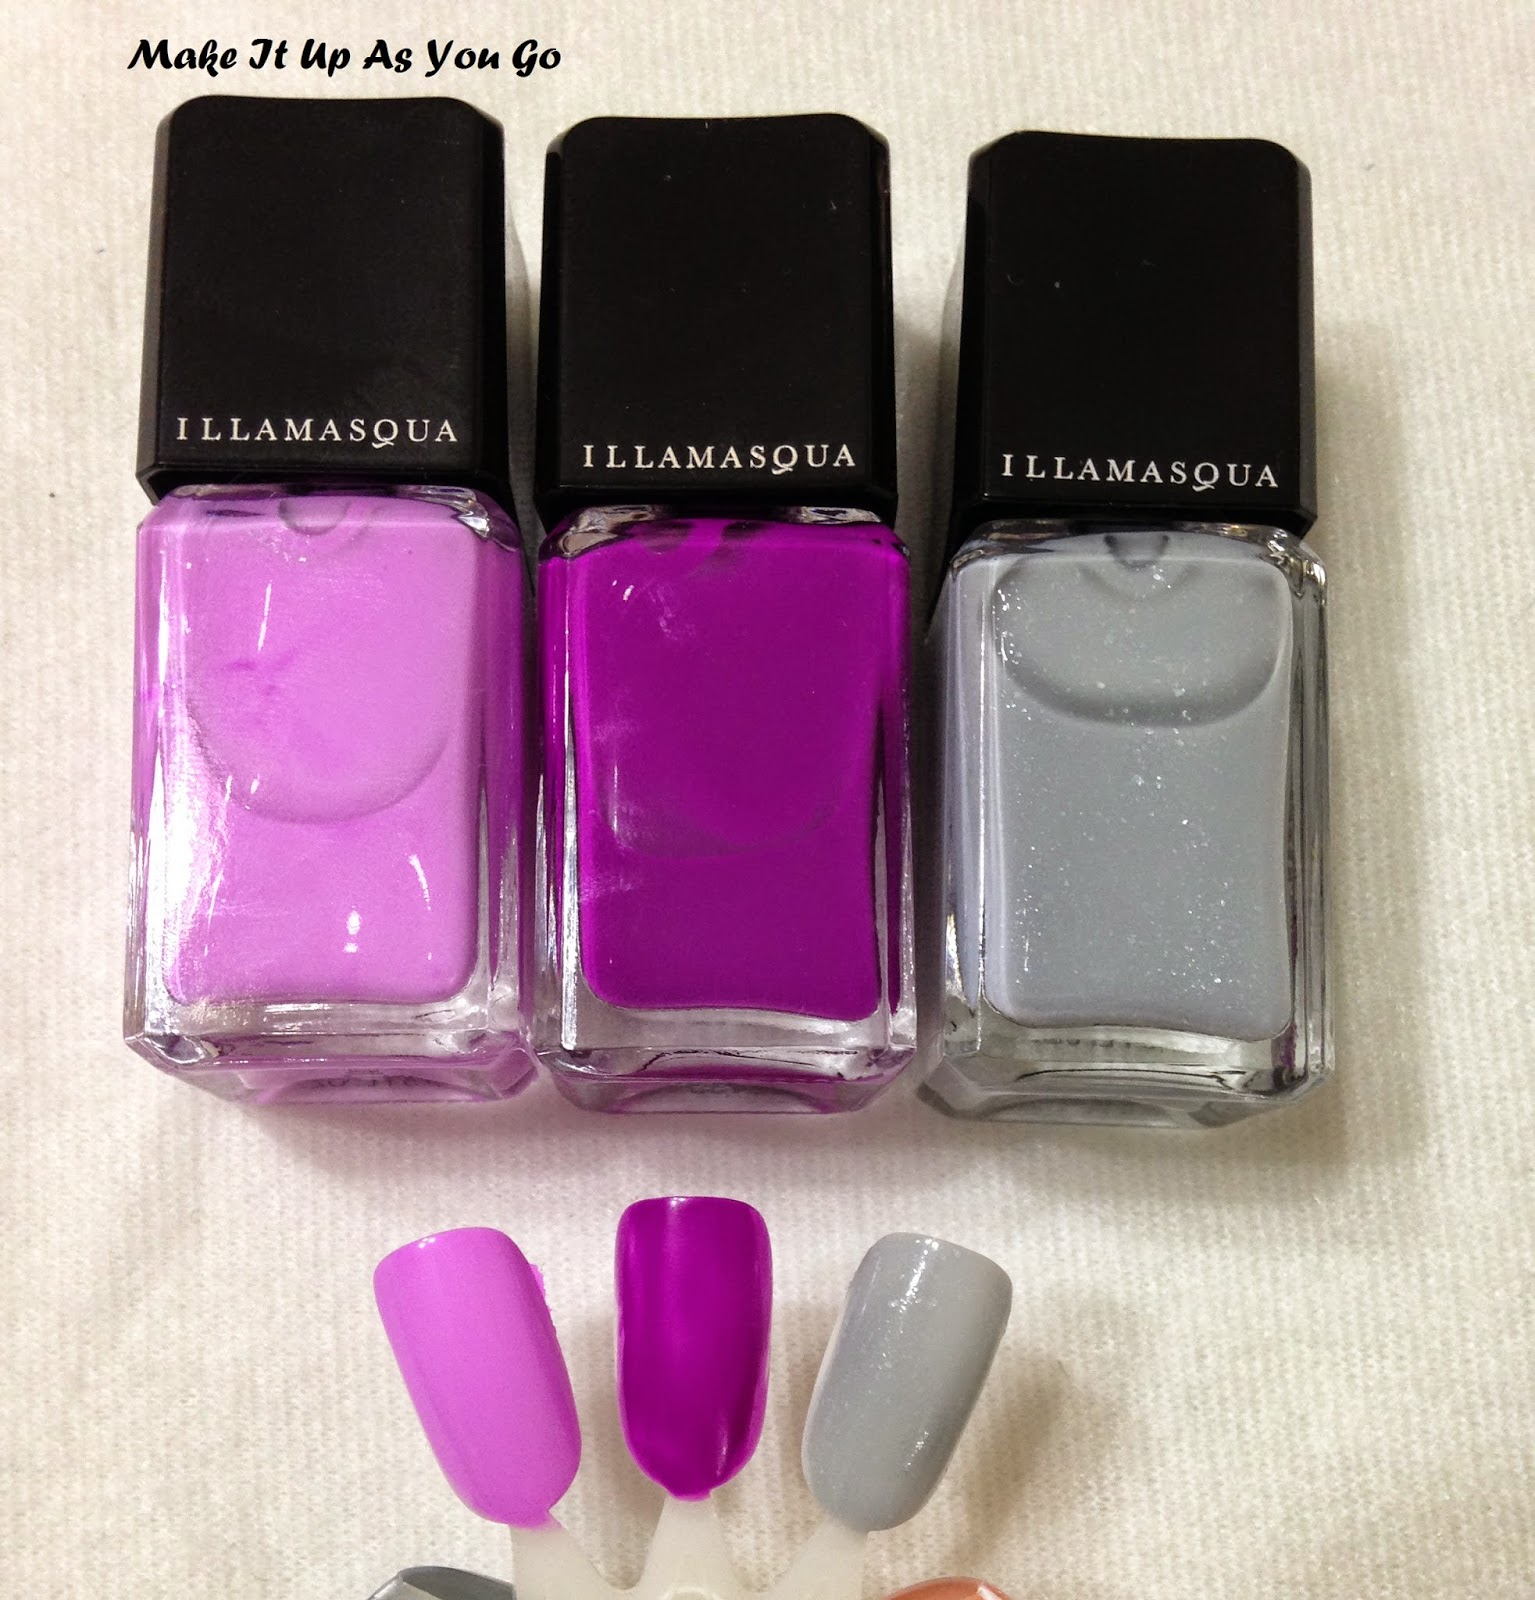 I Find A Lot Of Nail Polish At T J Ma And Marshalls But Never An Illamasqua Some My Favorite You Gals Love Their Polishes